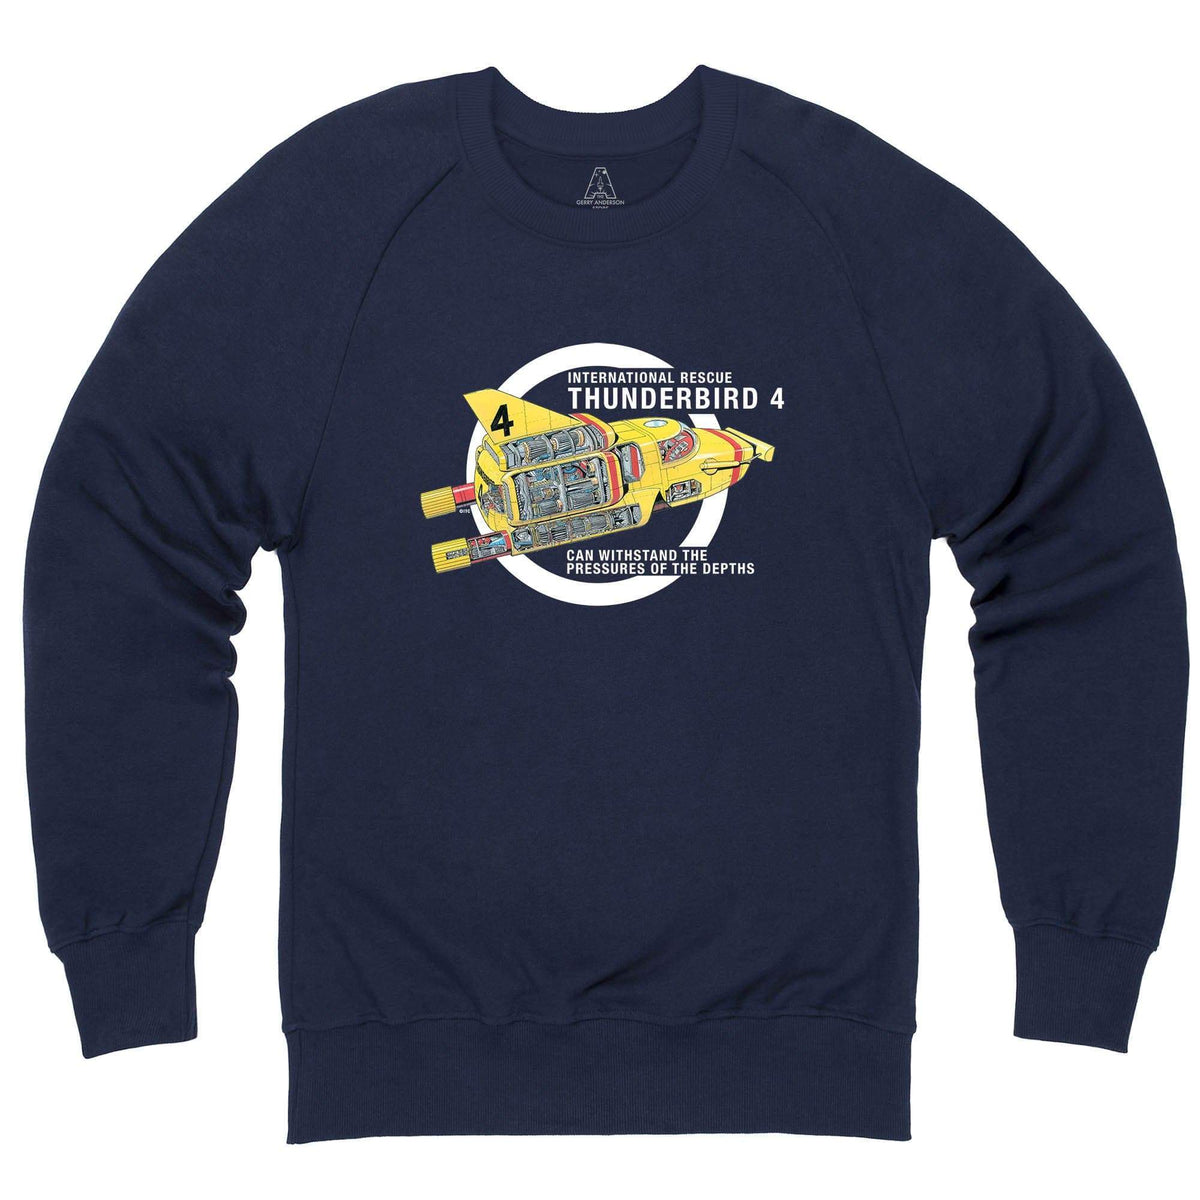 Thunderbirds: Thunderbird 4 Cutaway Sweatshirt [Official & Exclusive] - The Gerry Anderson Store